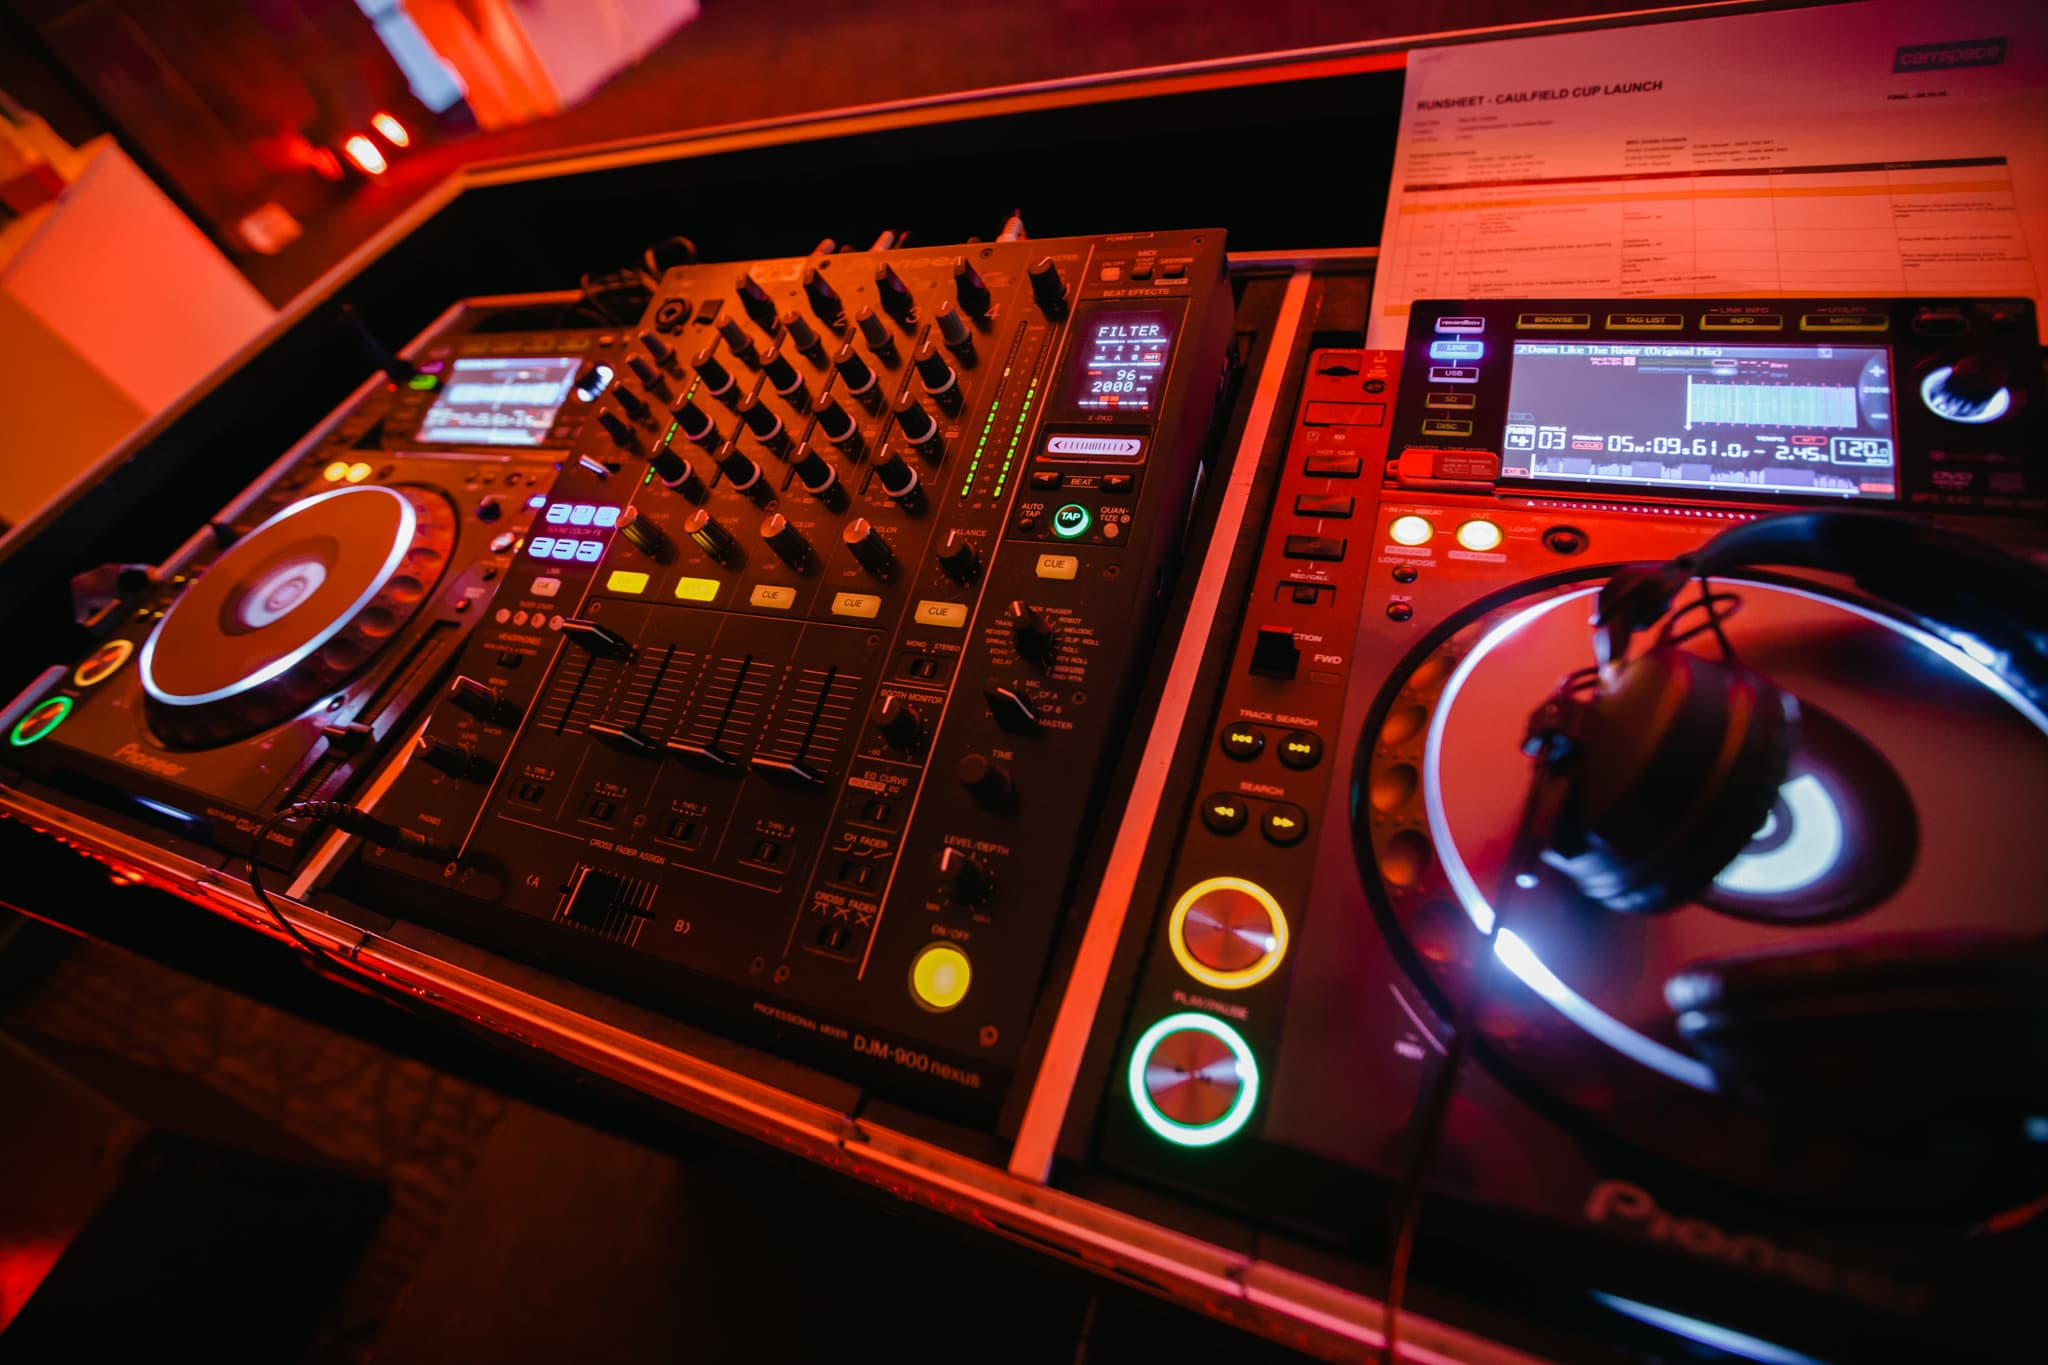 DJ turntable at event